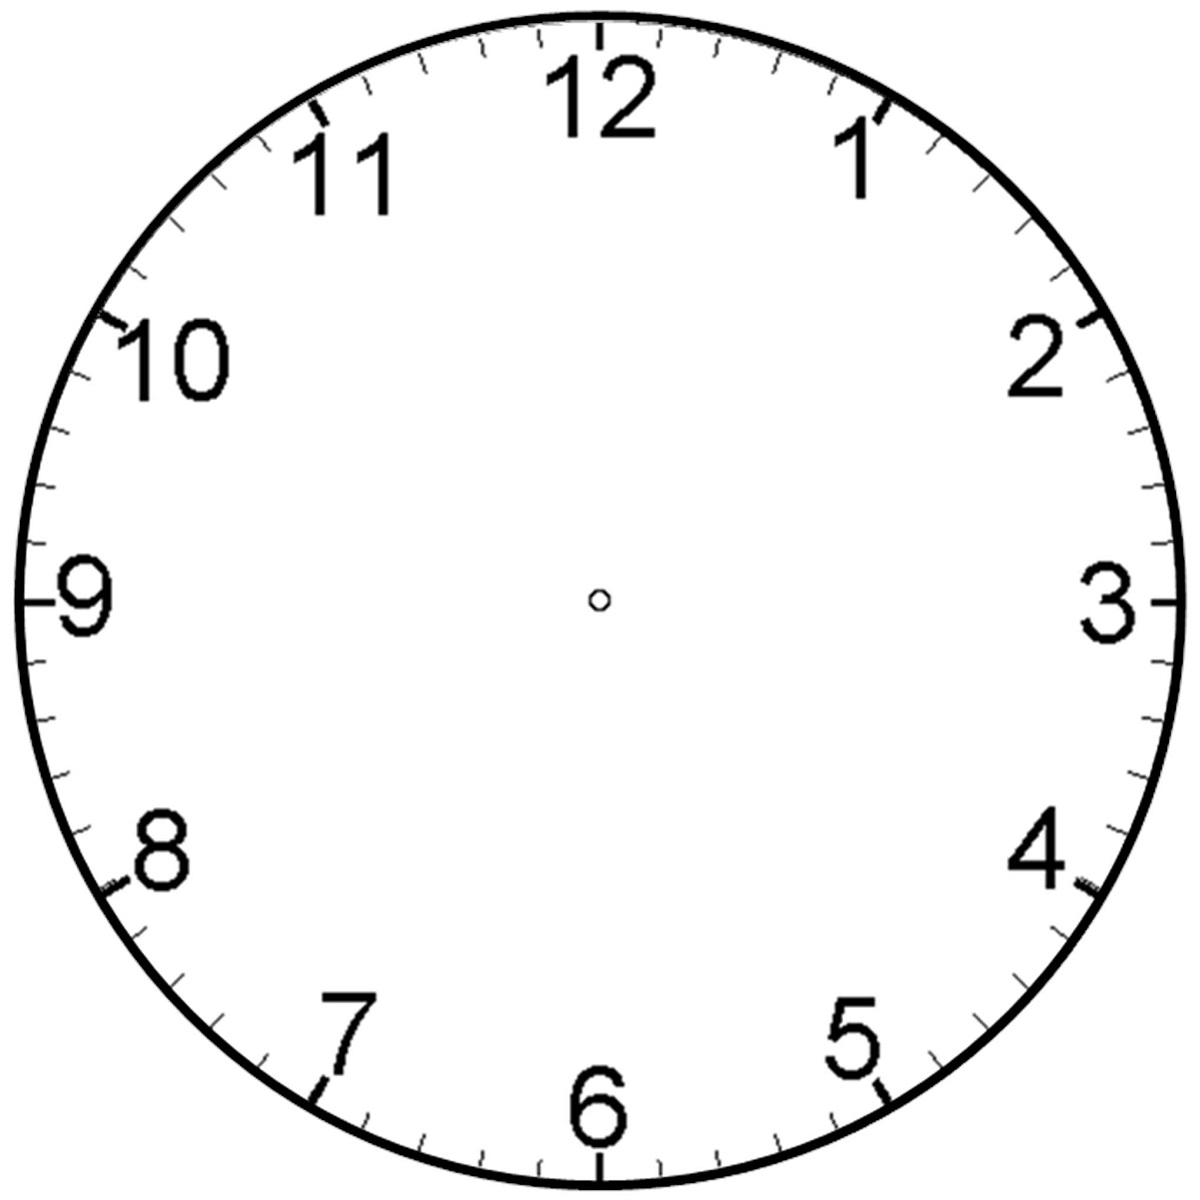 clock face template image